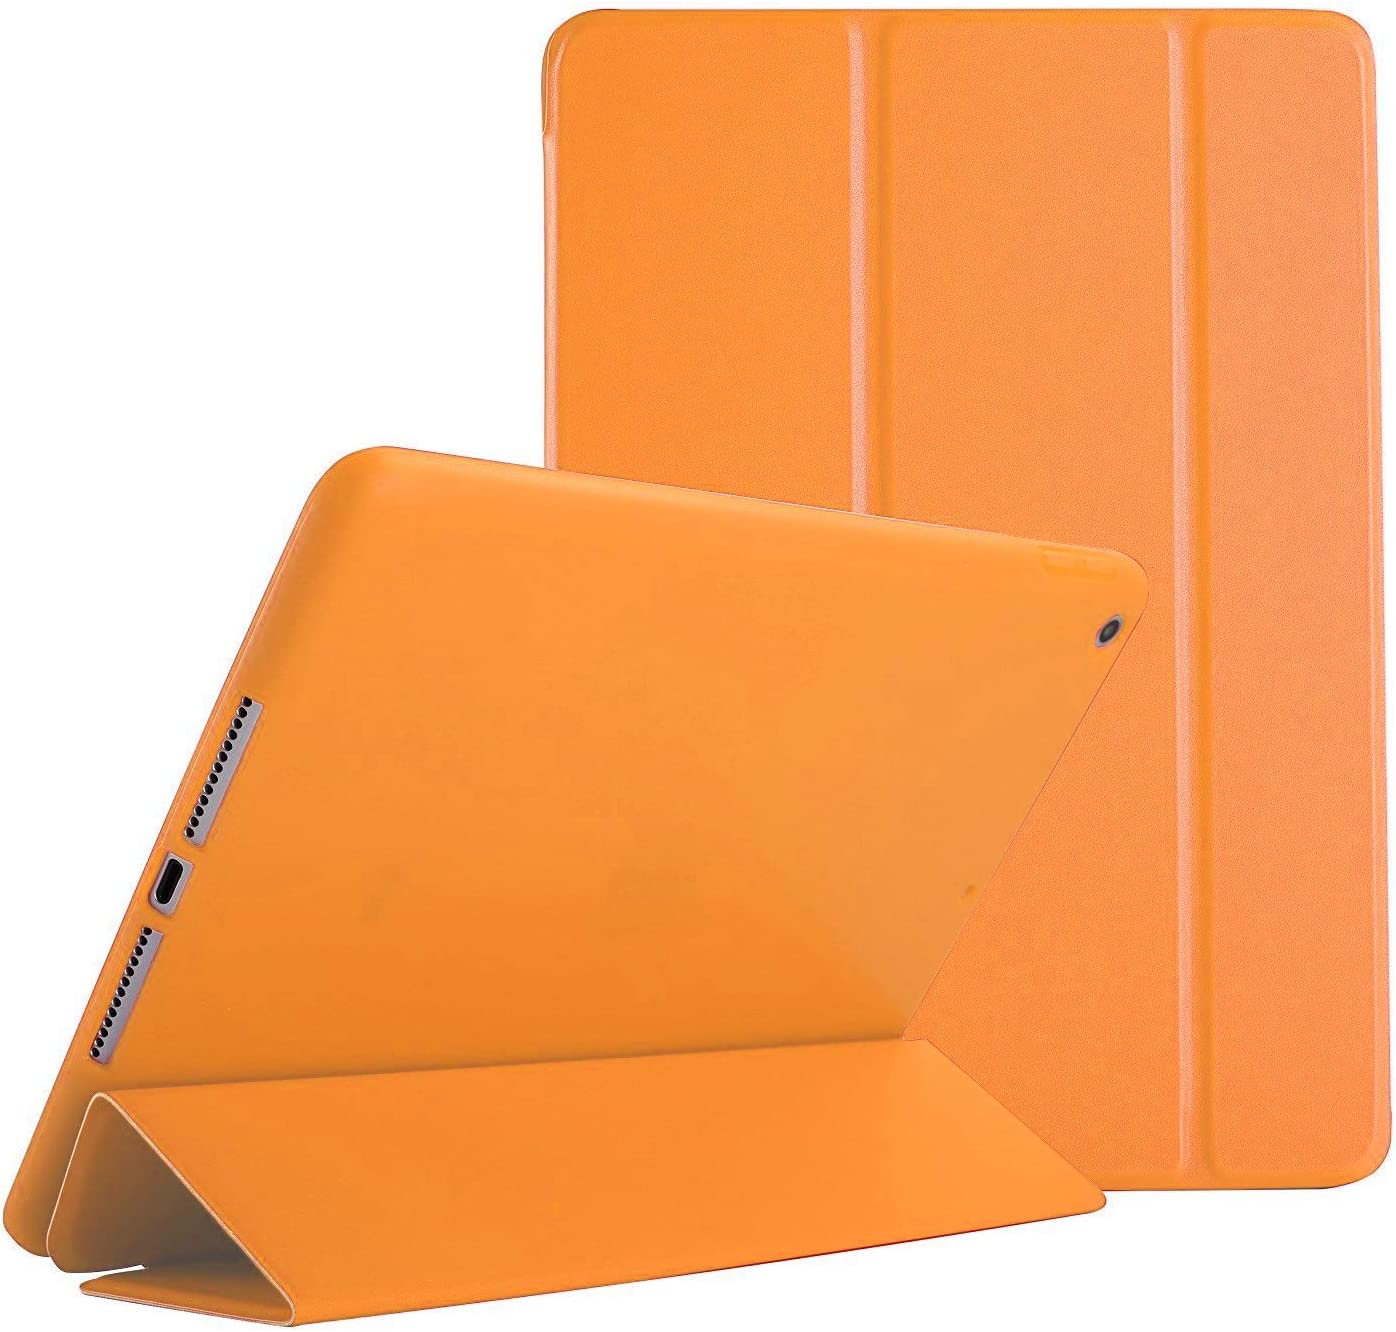 DuraSafe Cases For iPad 7.9 Inch Mini 3 Mini 2 Mini 1 Gen Protective Durable Shock Proof Supportive Magnetic Dual Angle Stand Cover - Orange